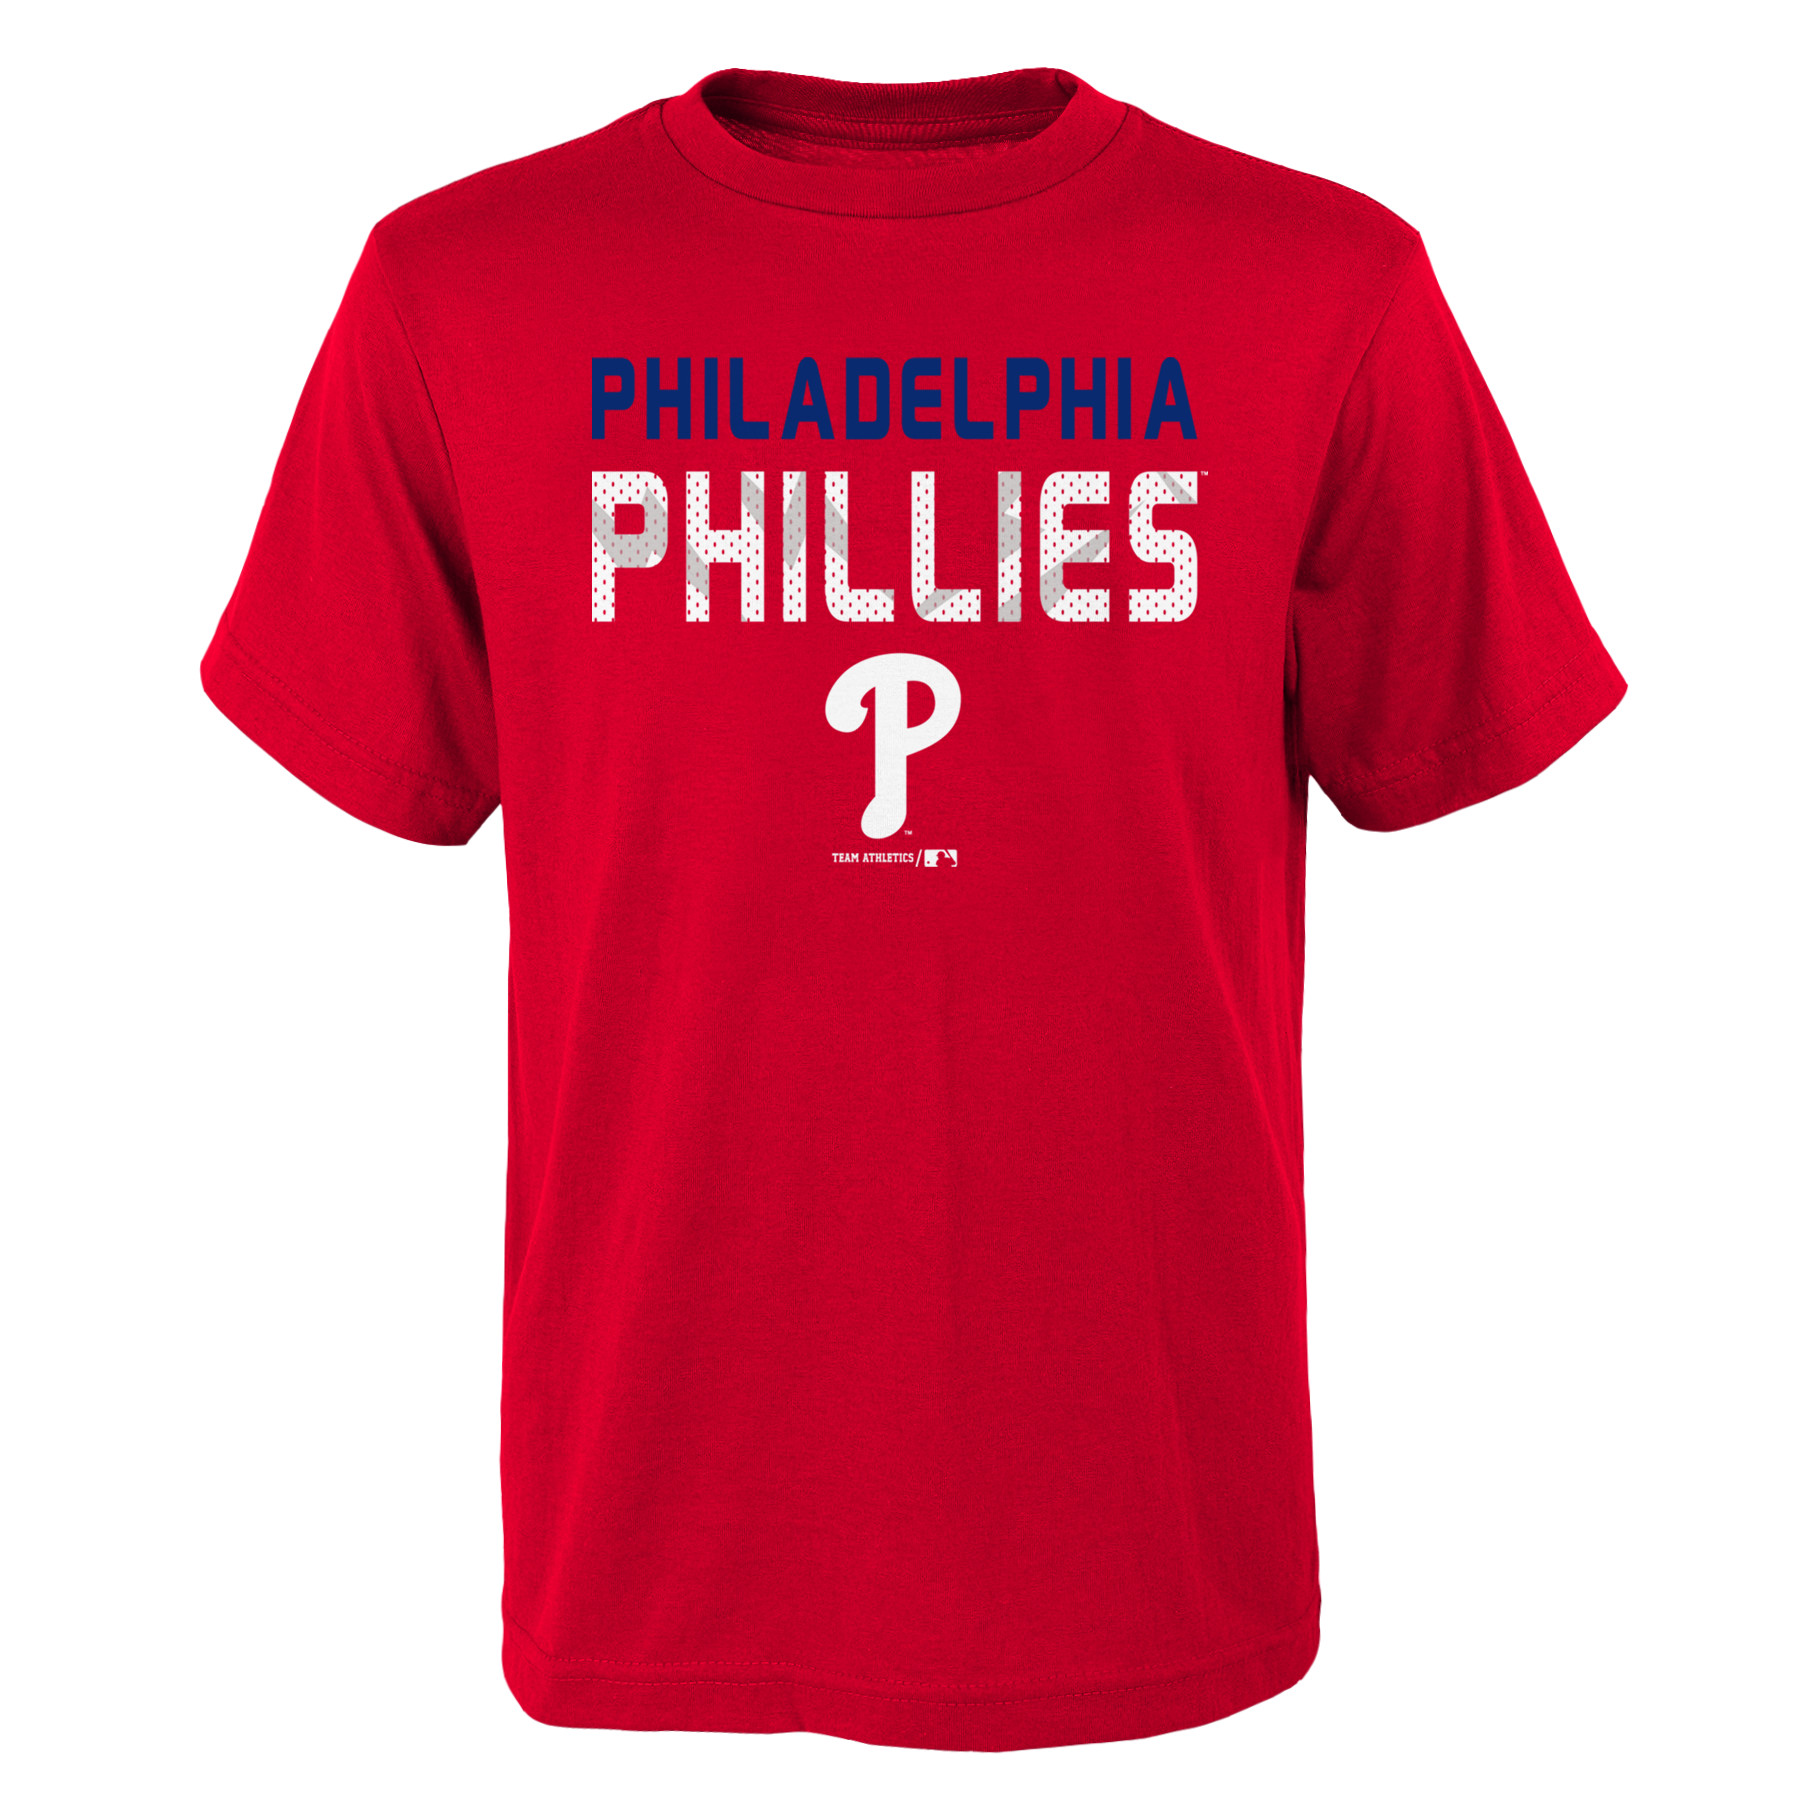 MLB Philadephia PHILLIES TEE Short Sleeve Boys Team Name and LOGO 100% Cotton Team Color 4-18